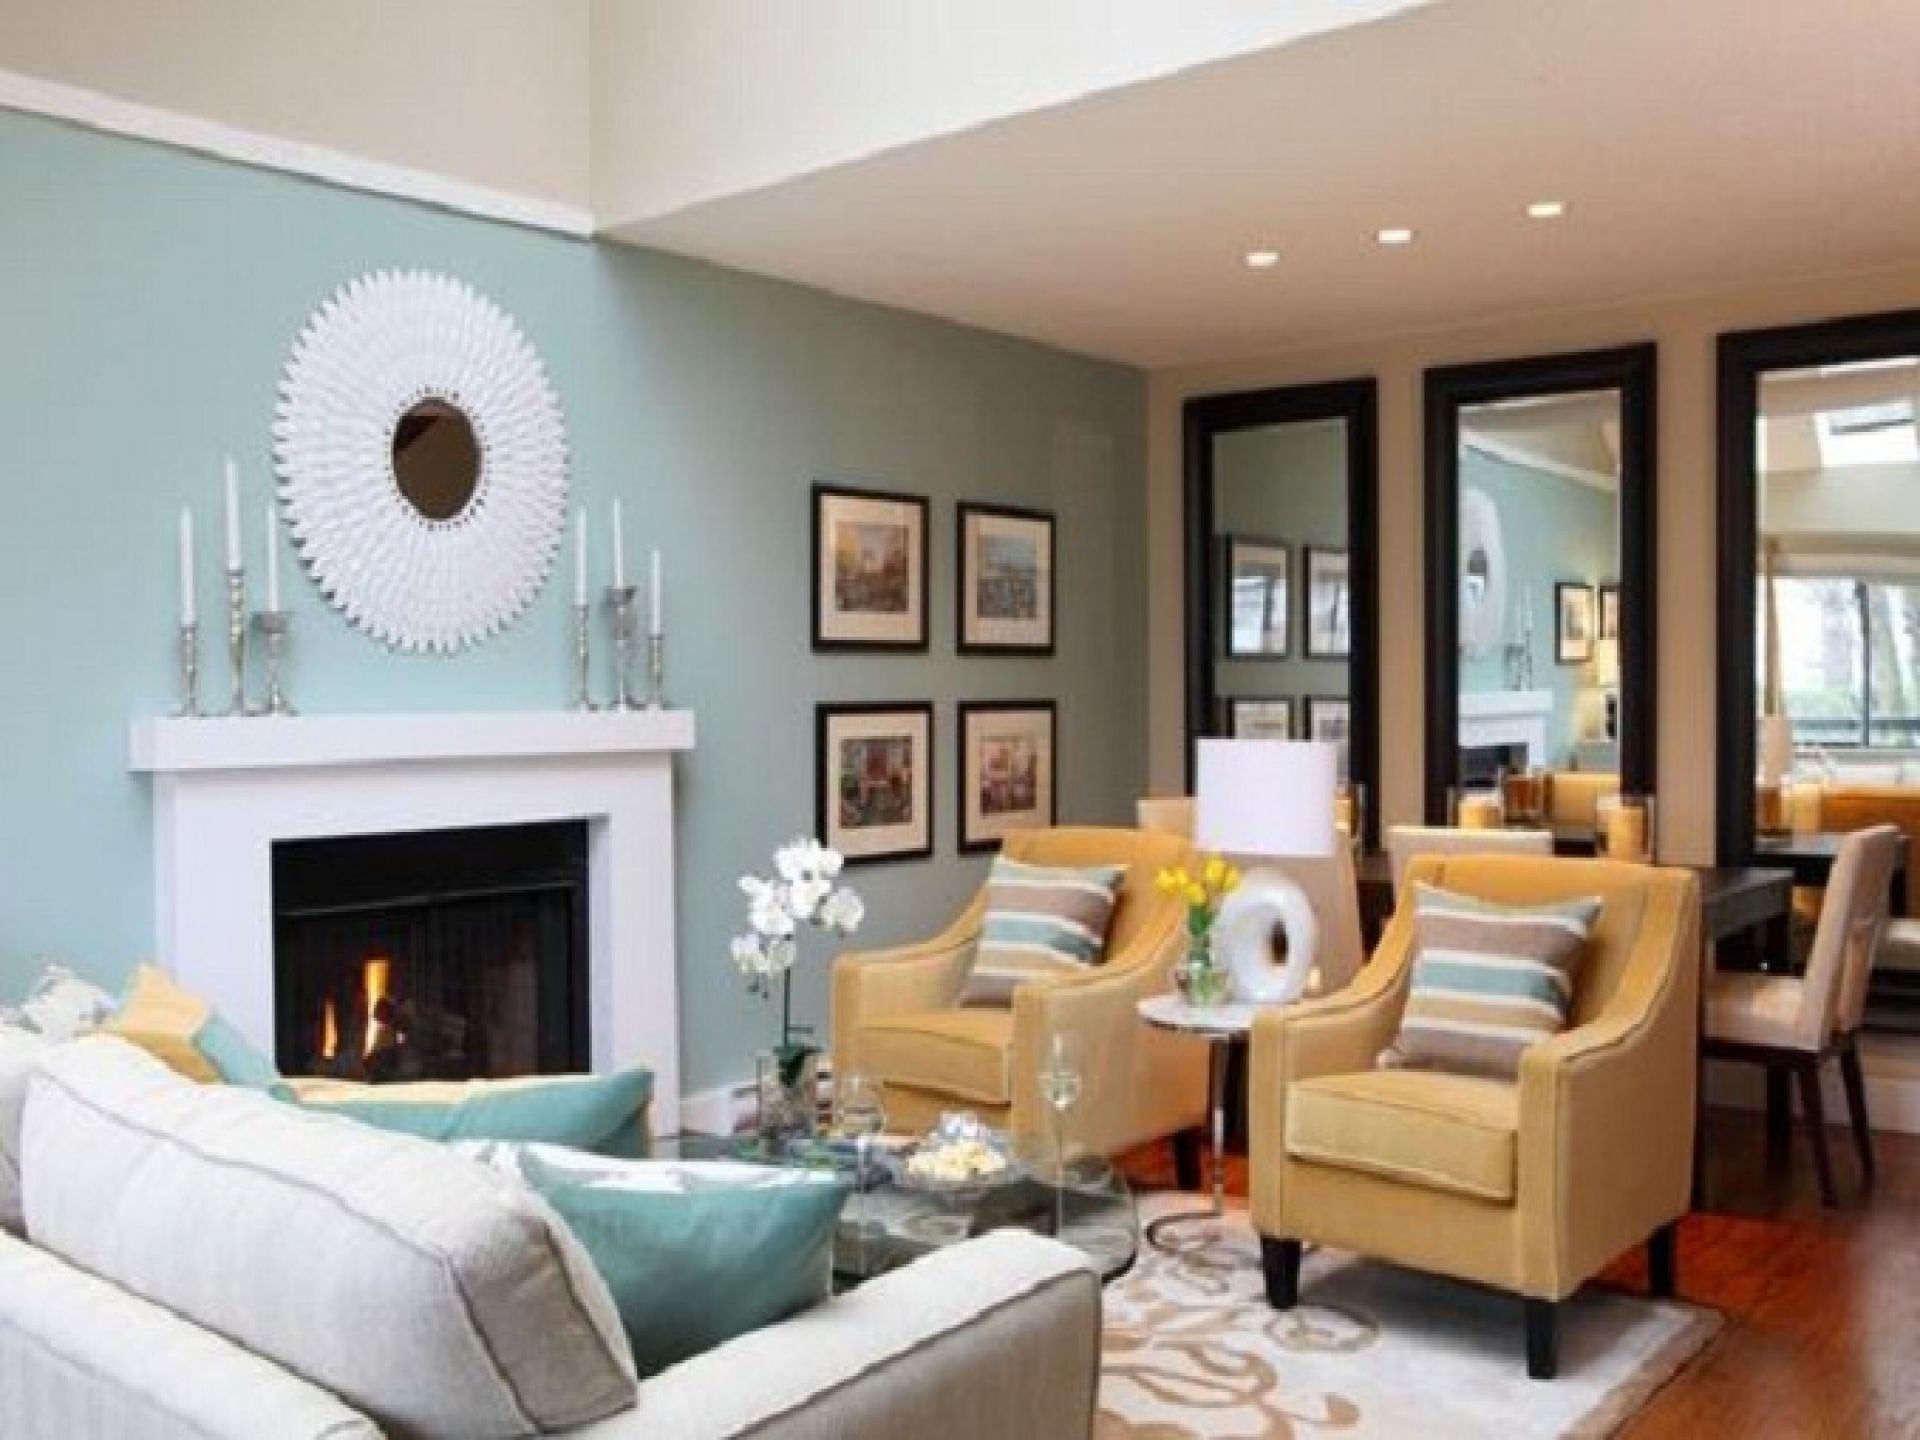 10 Top Wall Color For Small Living Room